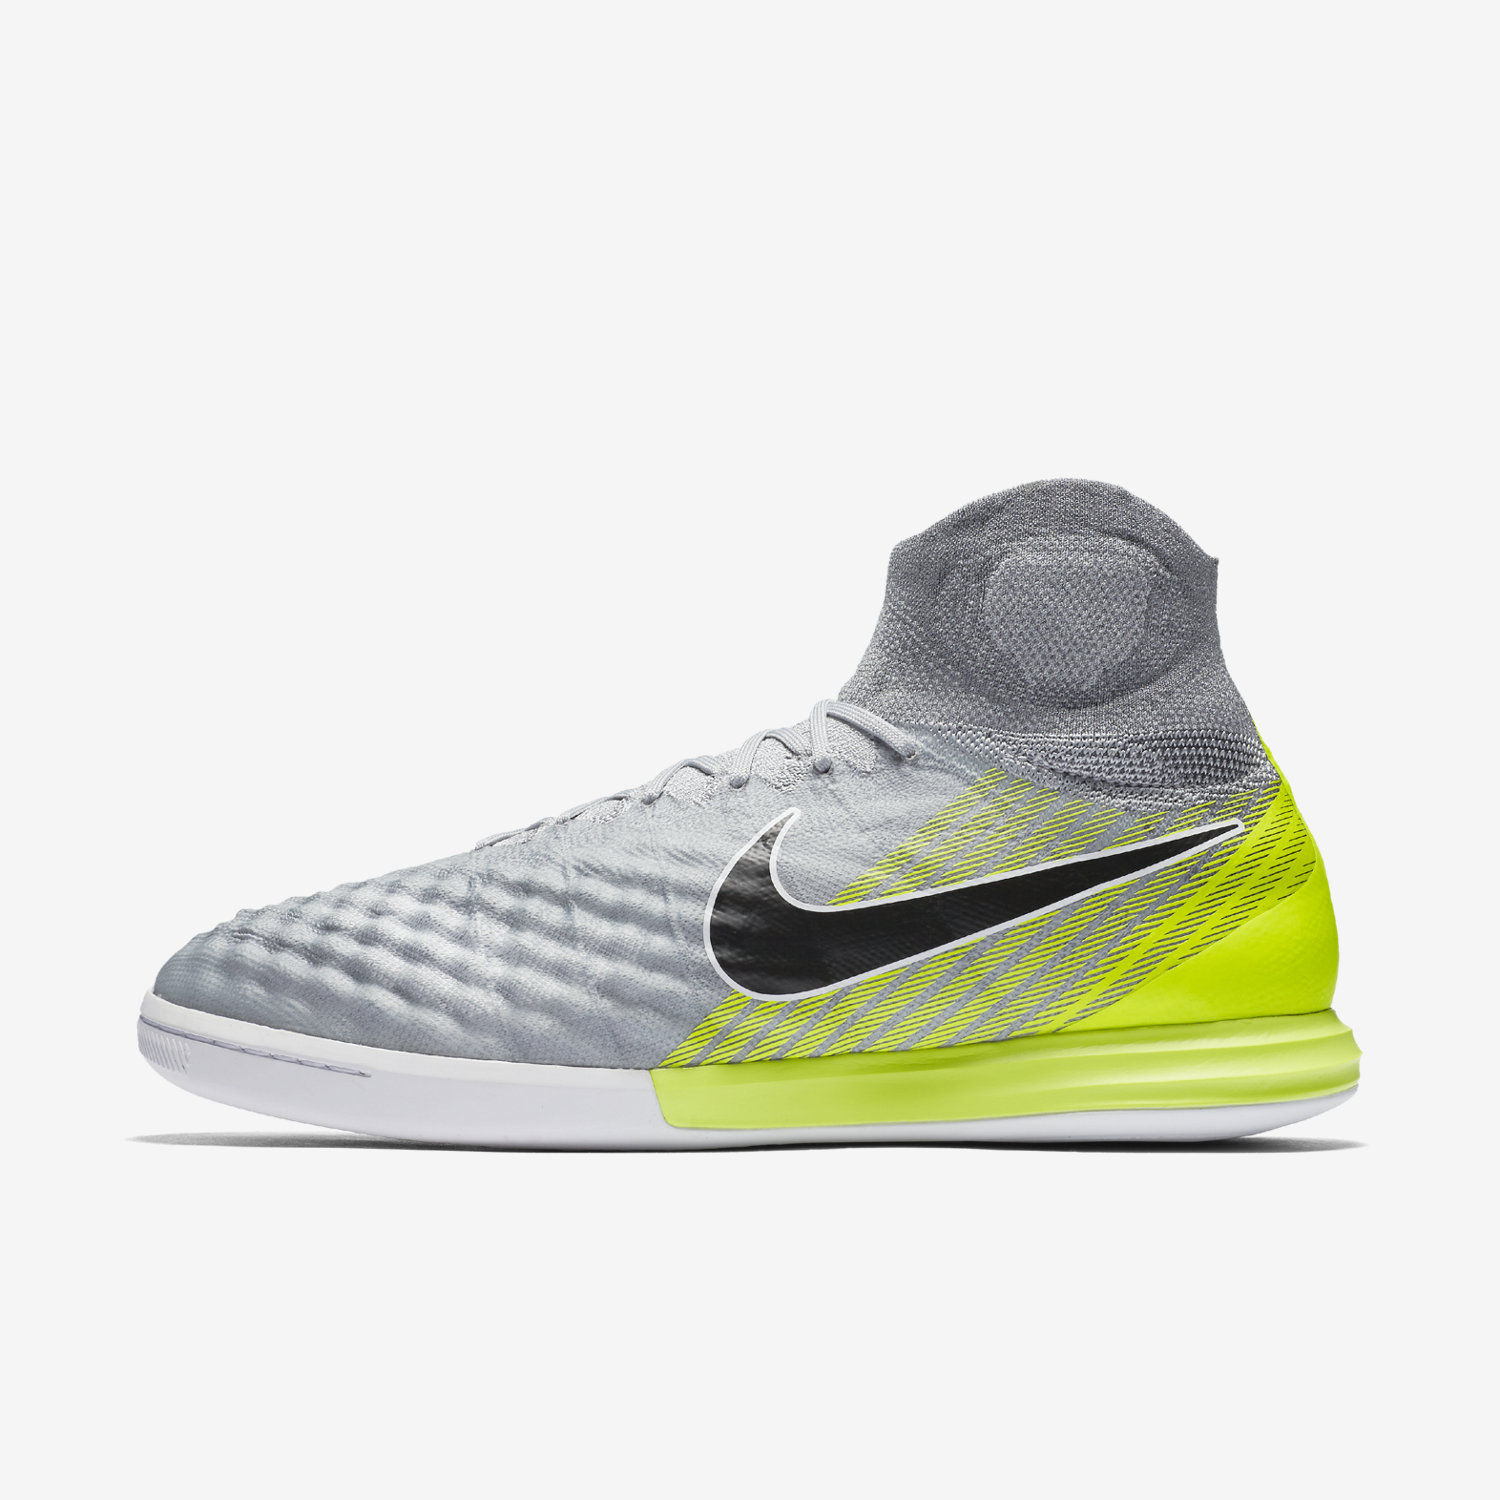 Nike indoor soccer shoes magista